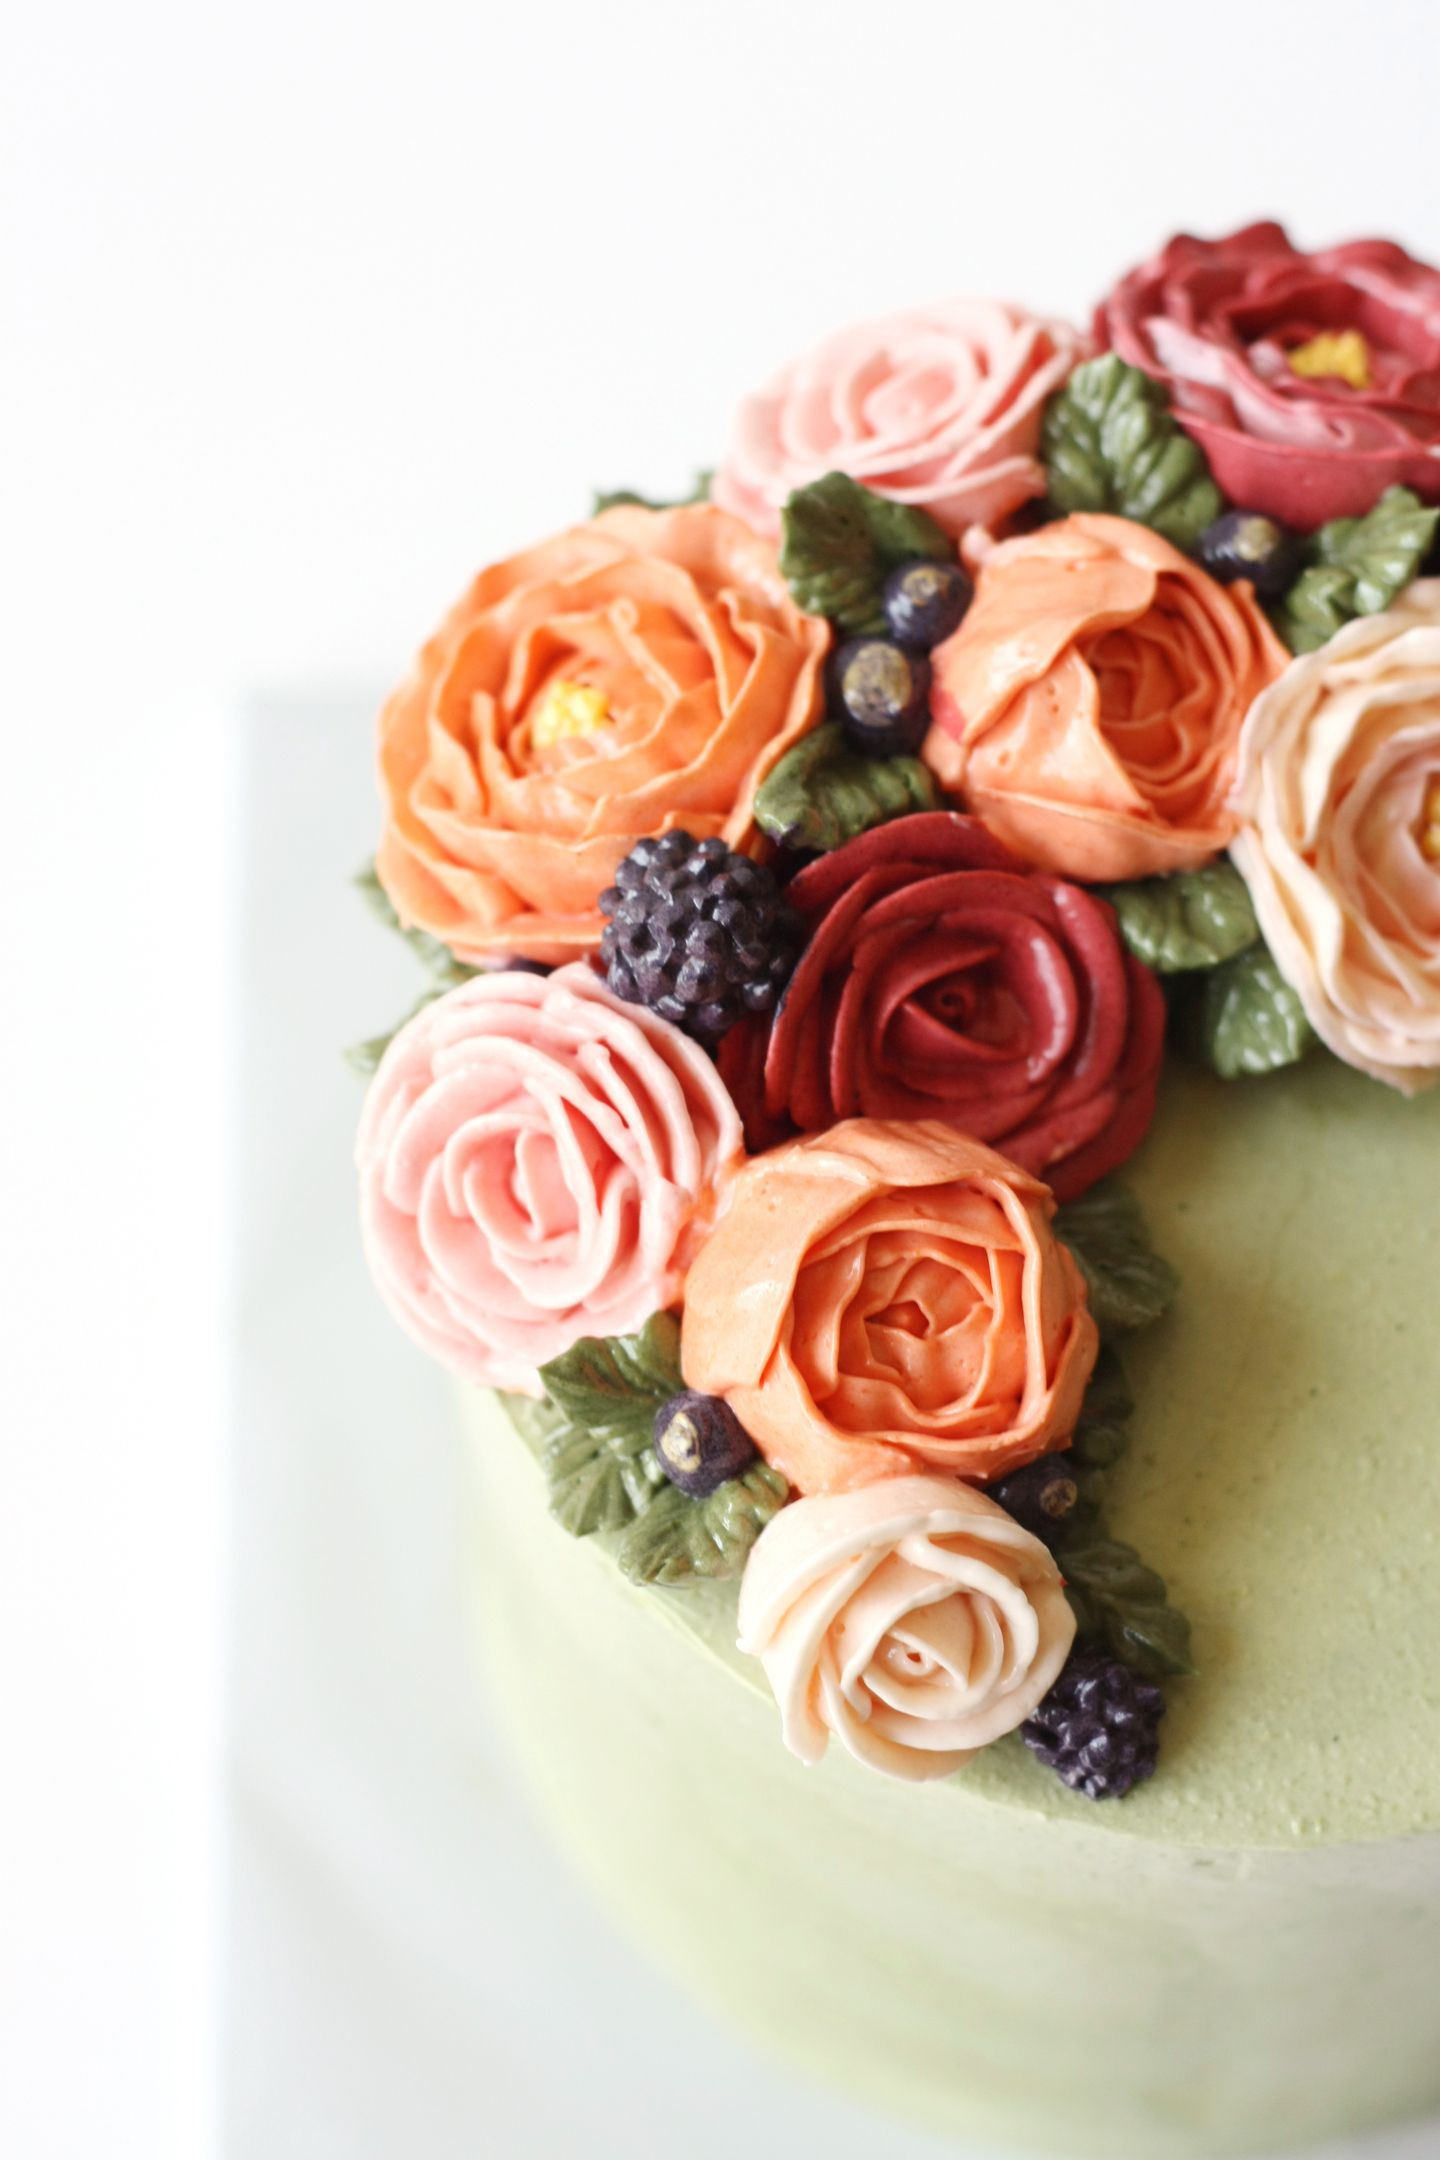 Update Your Buttercream Discover Blooming Floral Designs Must Know Tips Leckereien Backen Just In Case